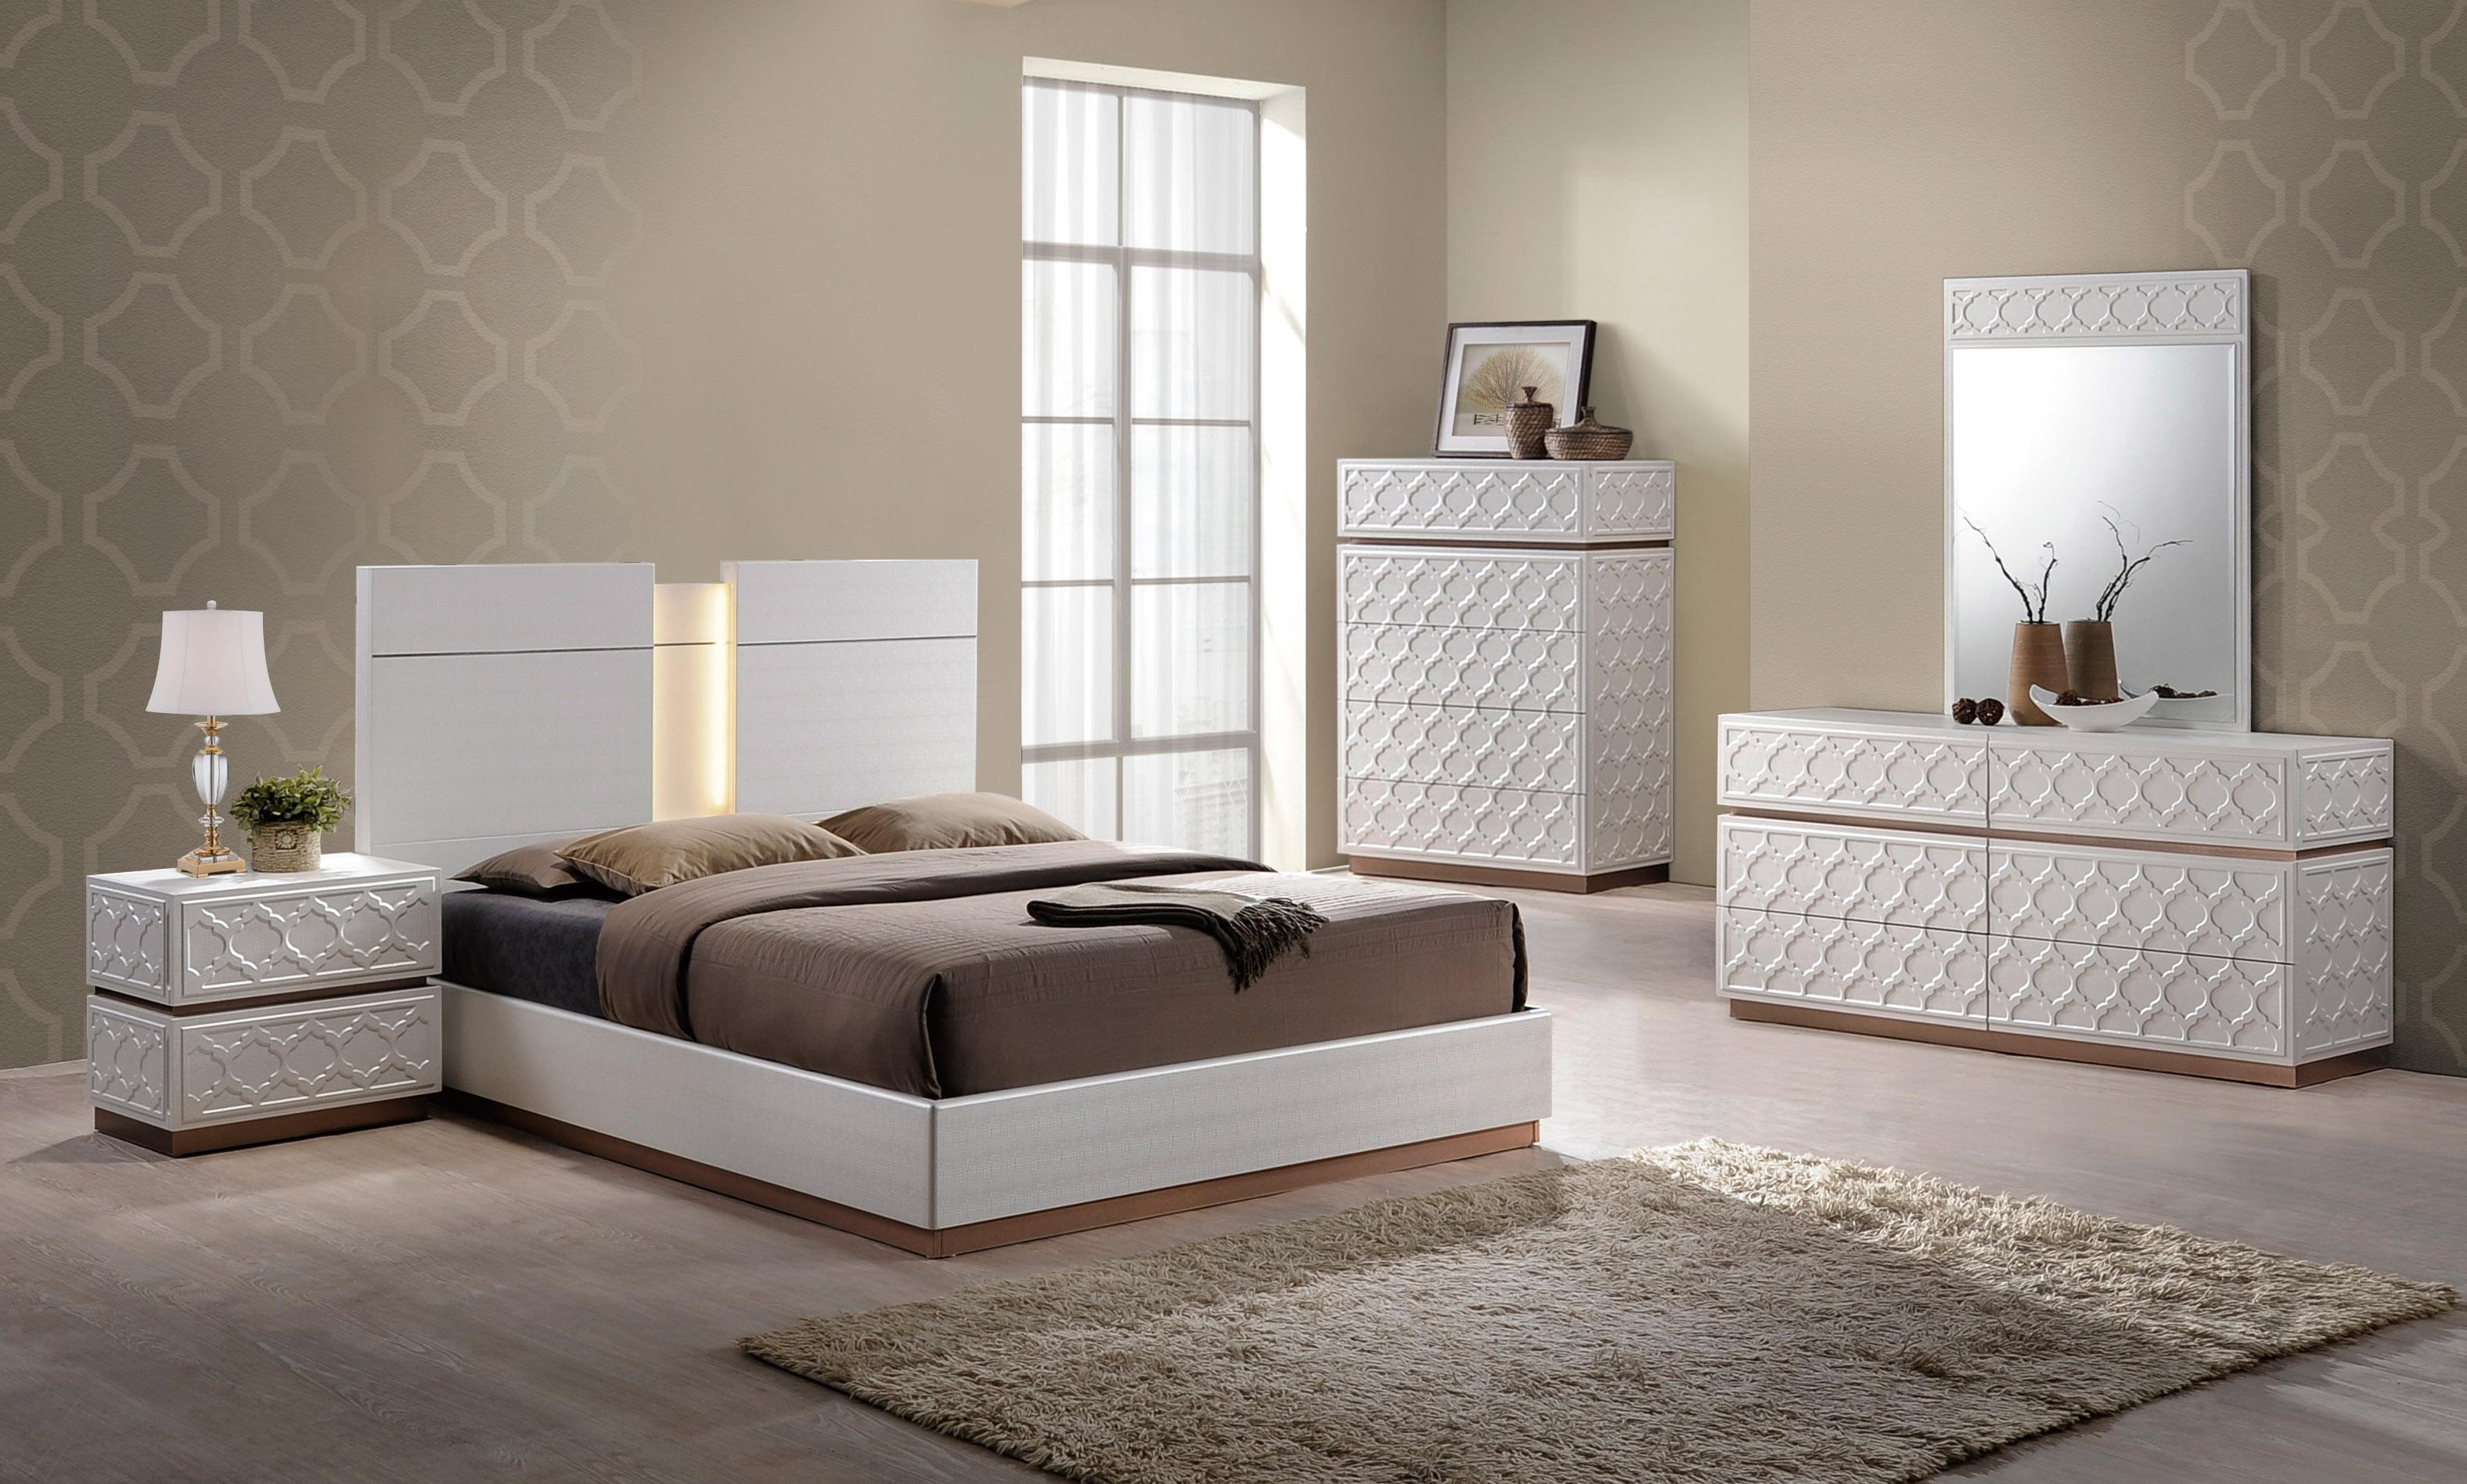 elegant cream and led bedroom set phoenix arizona global-emma